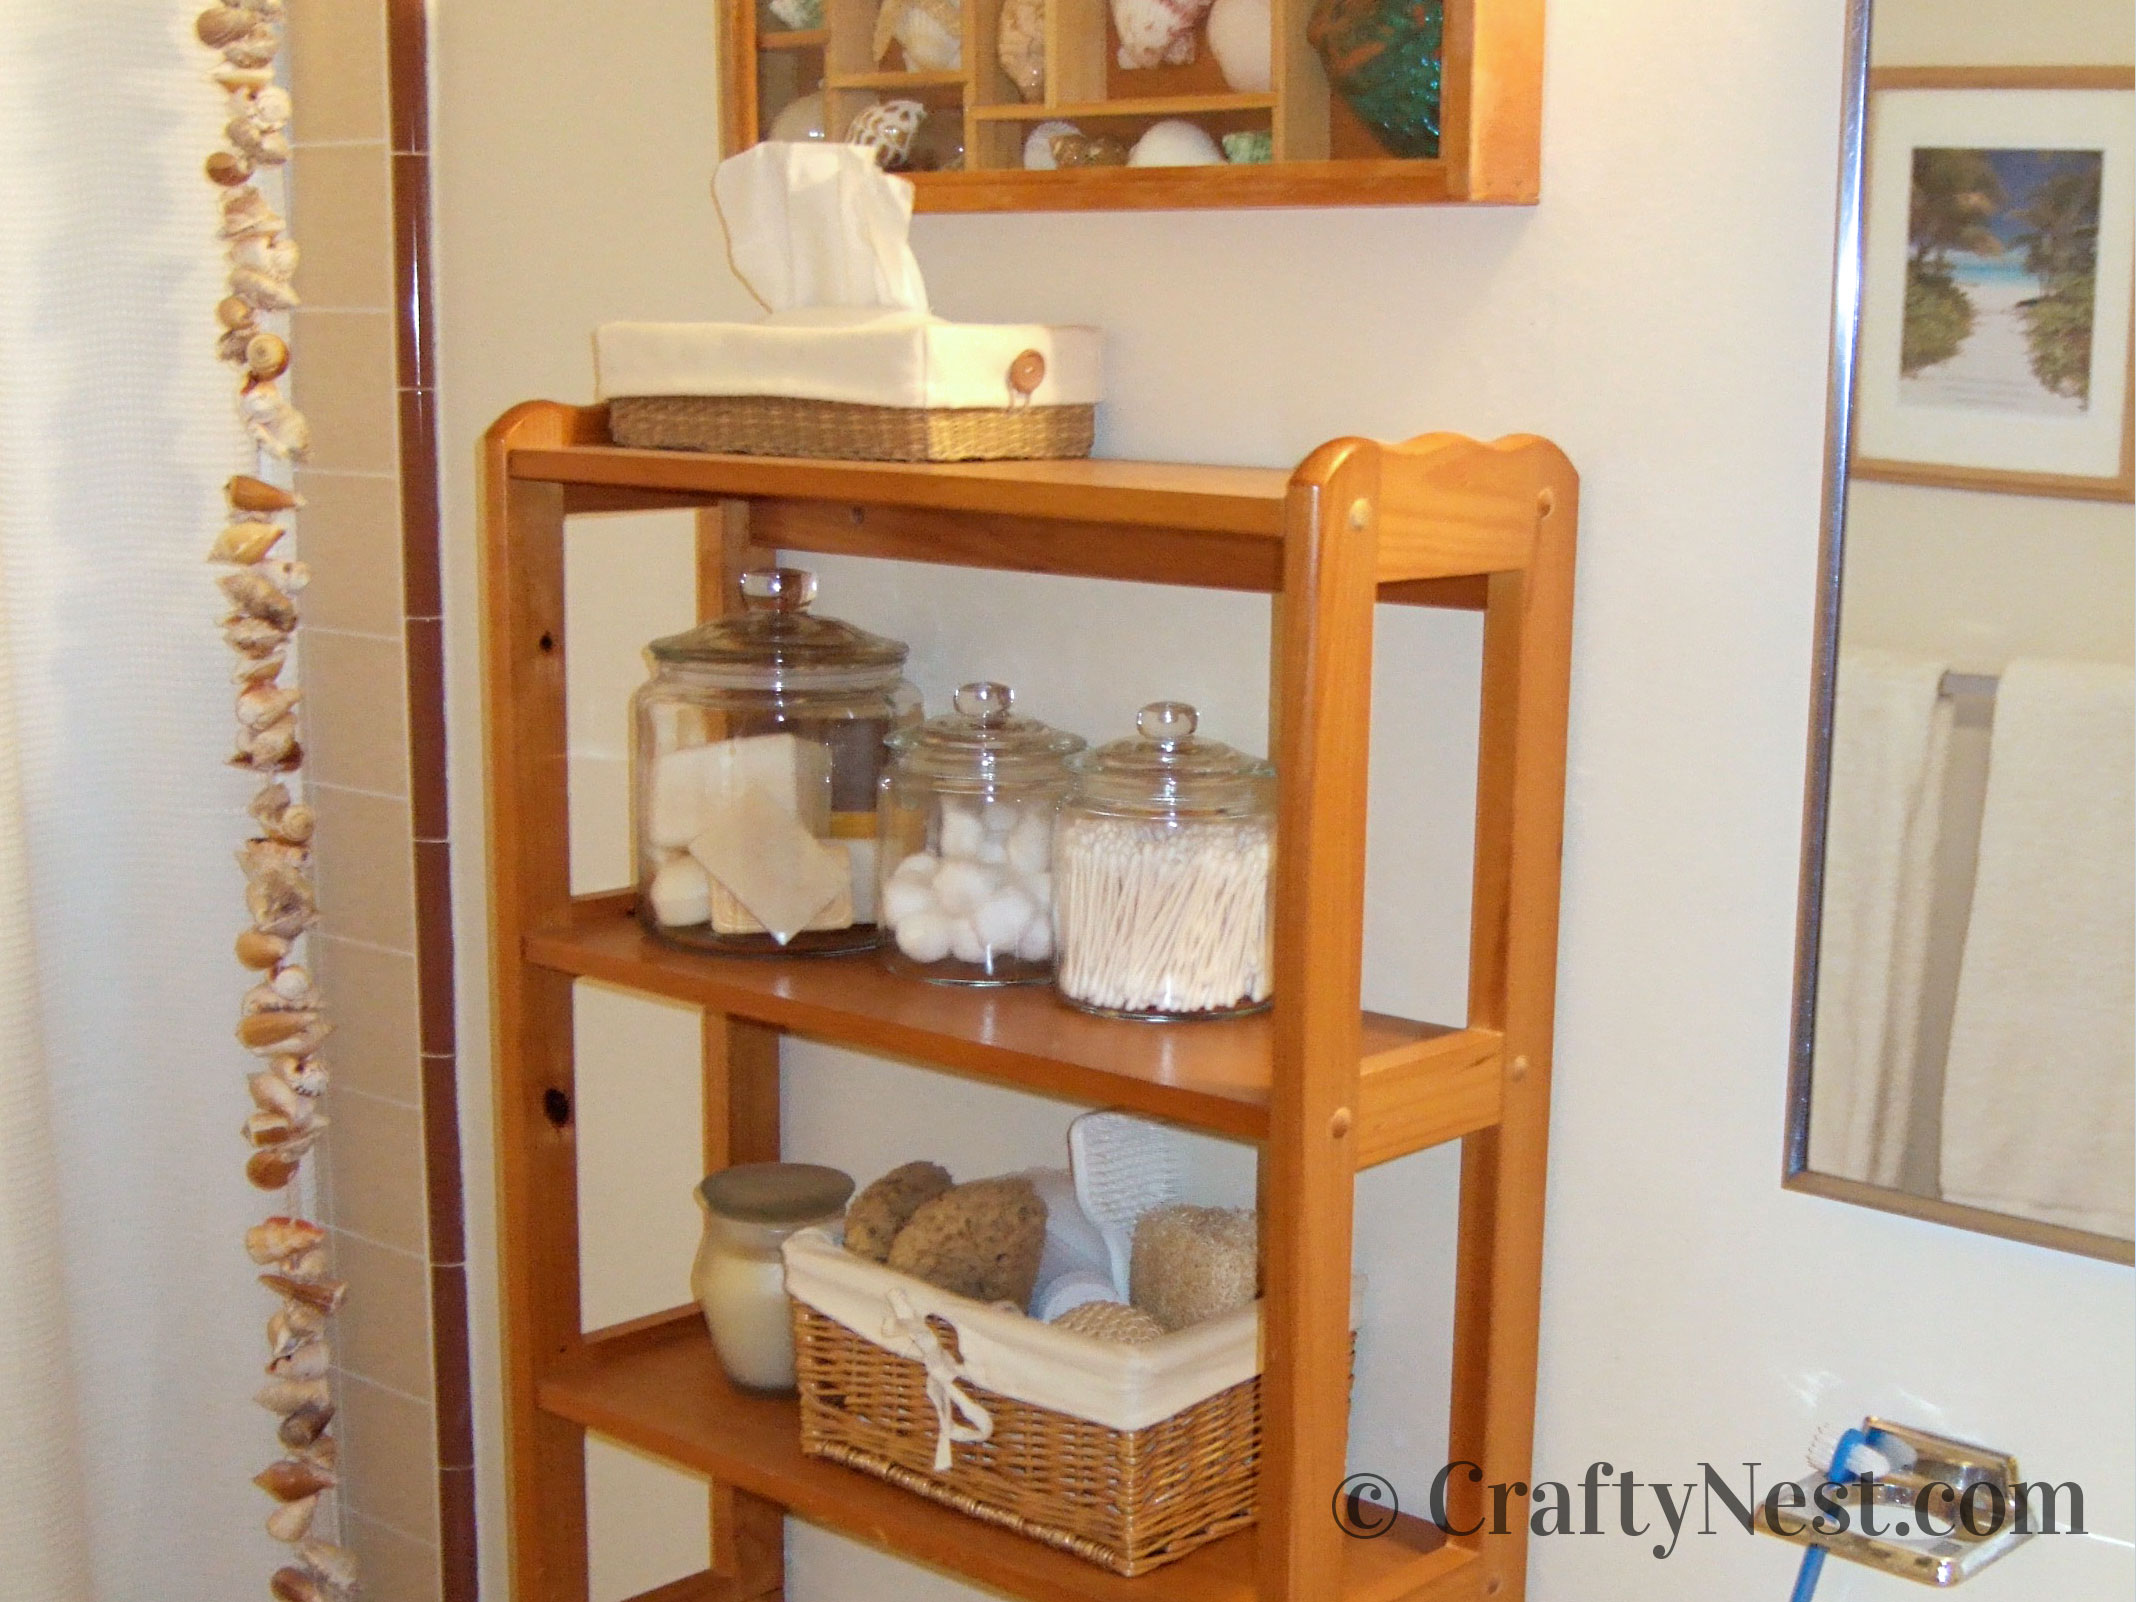 Bathroom with shelves, jars, and seashells, photo